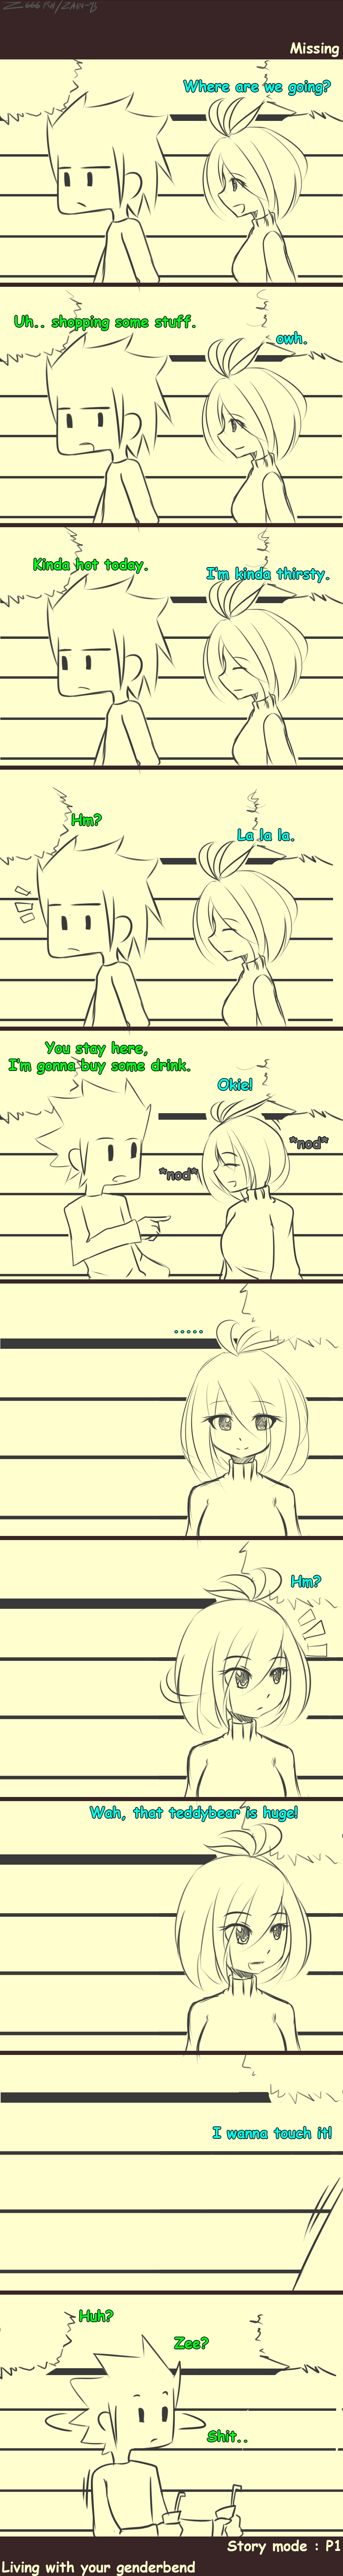 Living With Your Genderbend. *Missing - P1* by Zain-95